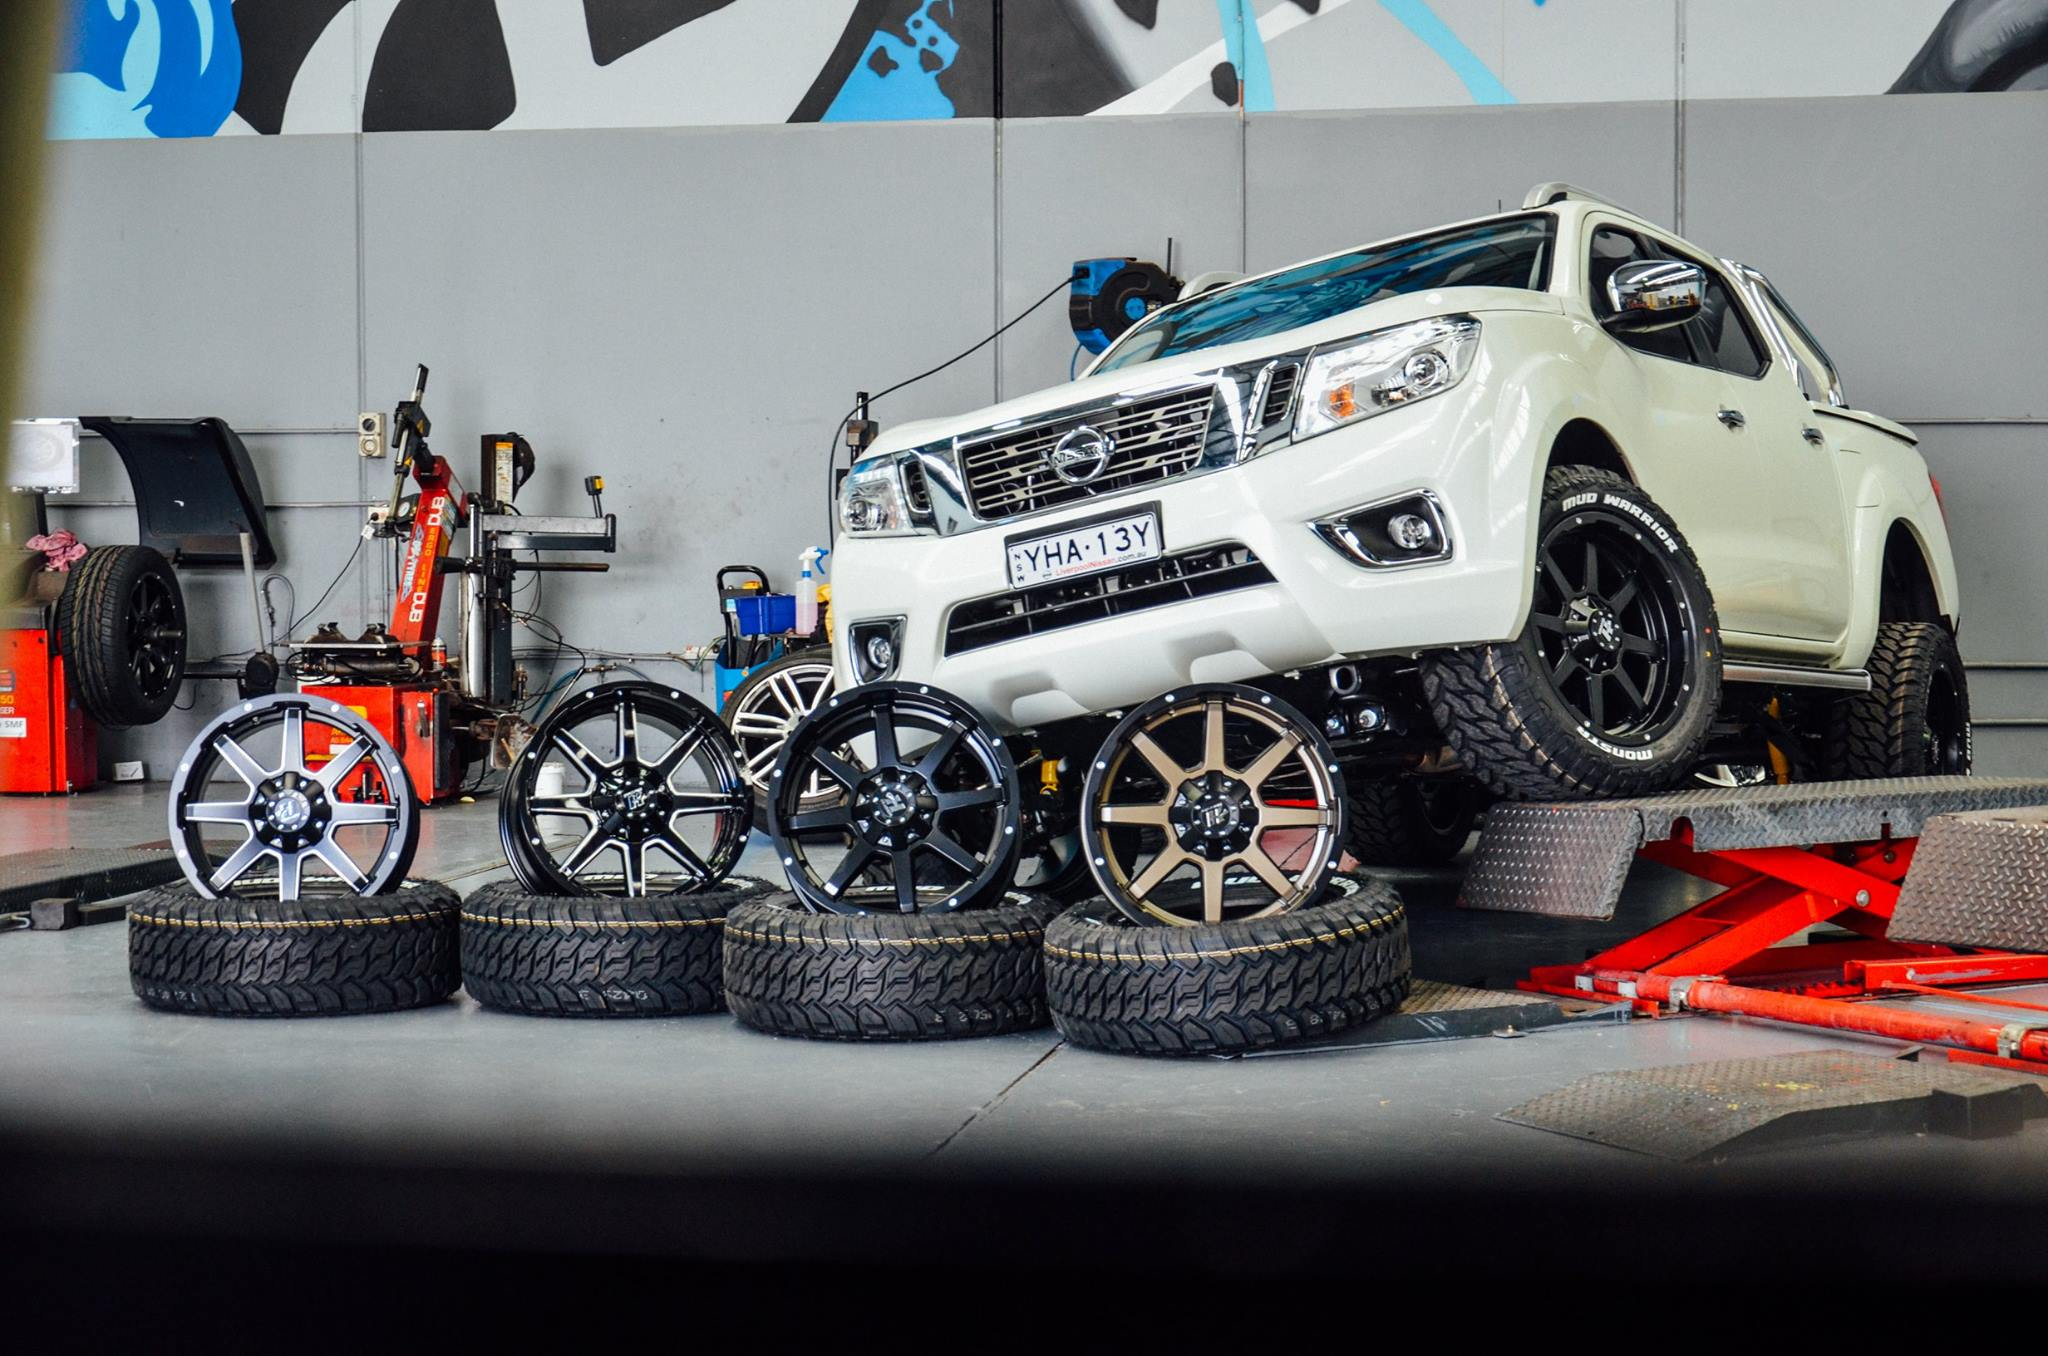 nissan-navara-that-got-fitted-with-a-sweet-set-of-20-hussla-stealth-wheels-wrapped-in-some-monsta-mud-warriors